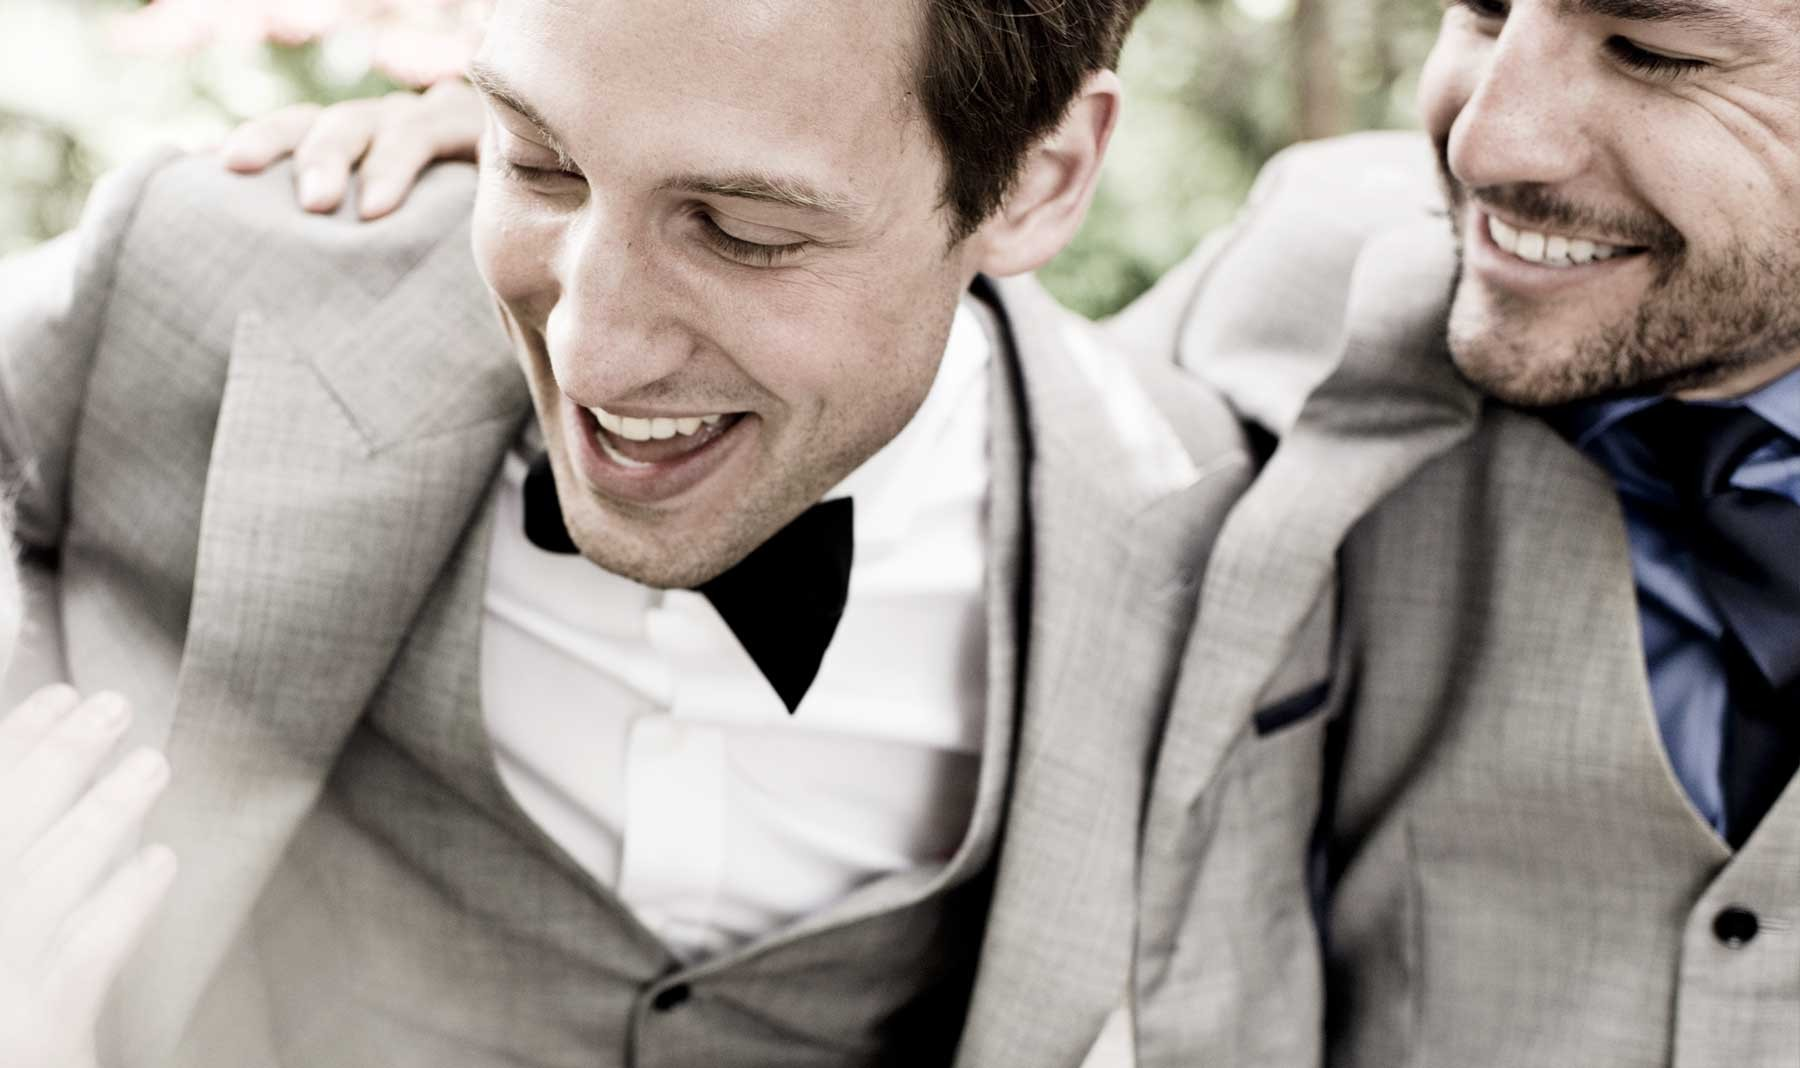 best man, best mans speech, tips for making a good best man's speech